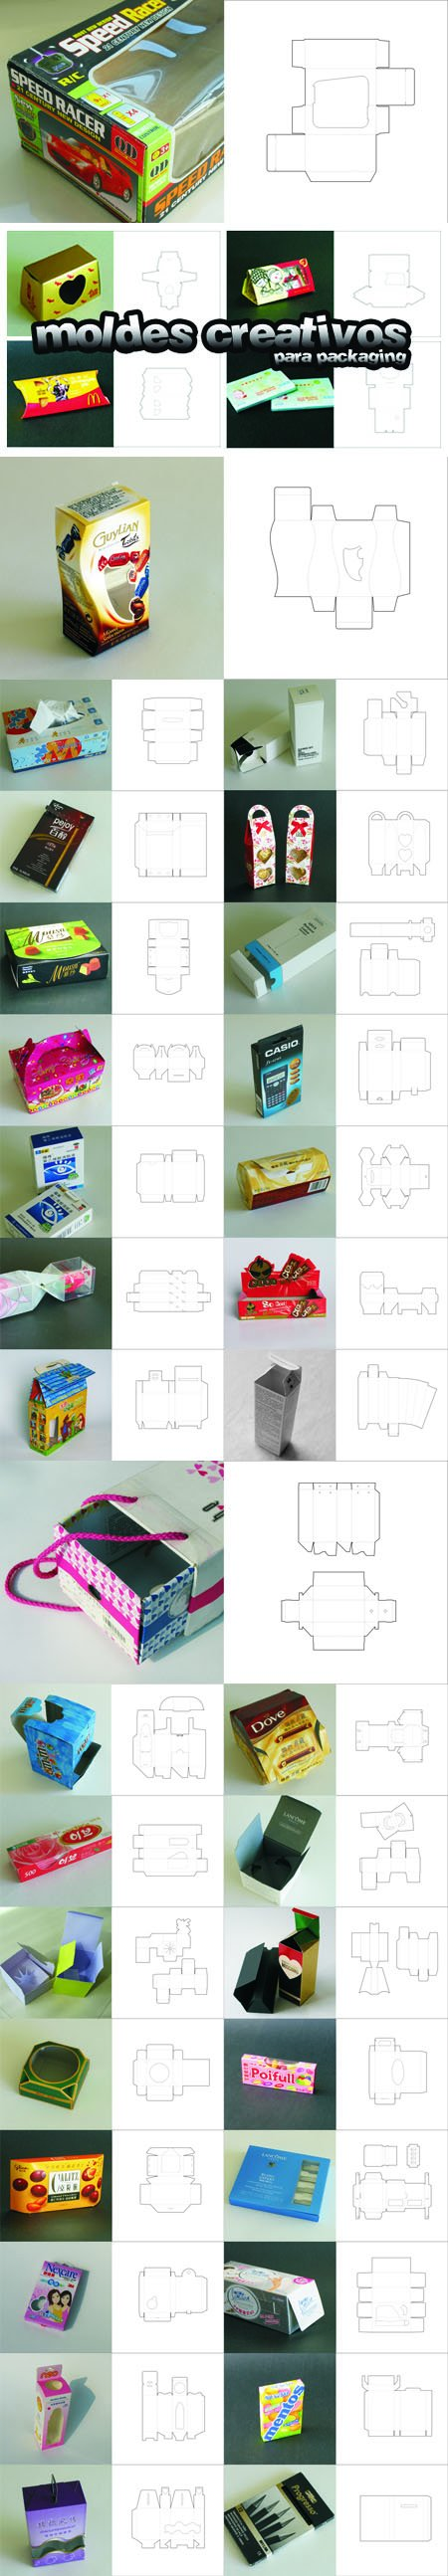 Creative Ideas for Packaging & Advertising 2